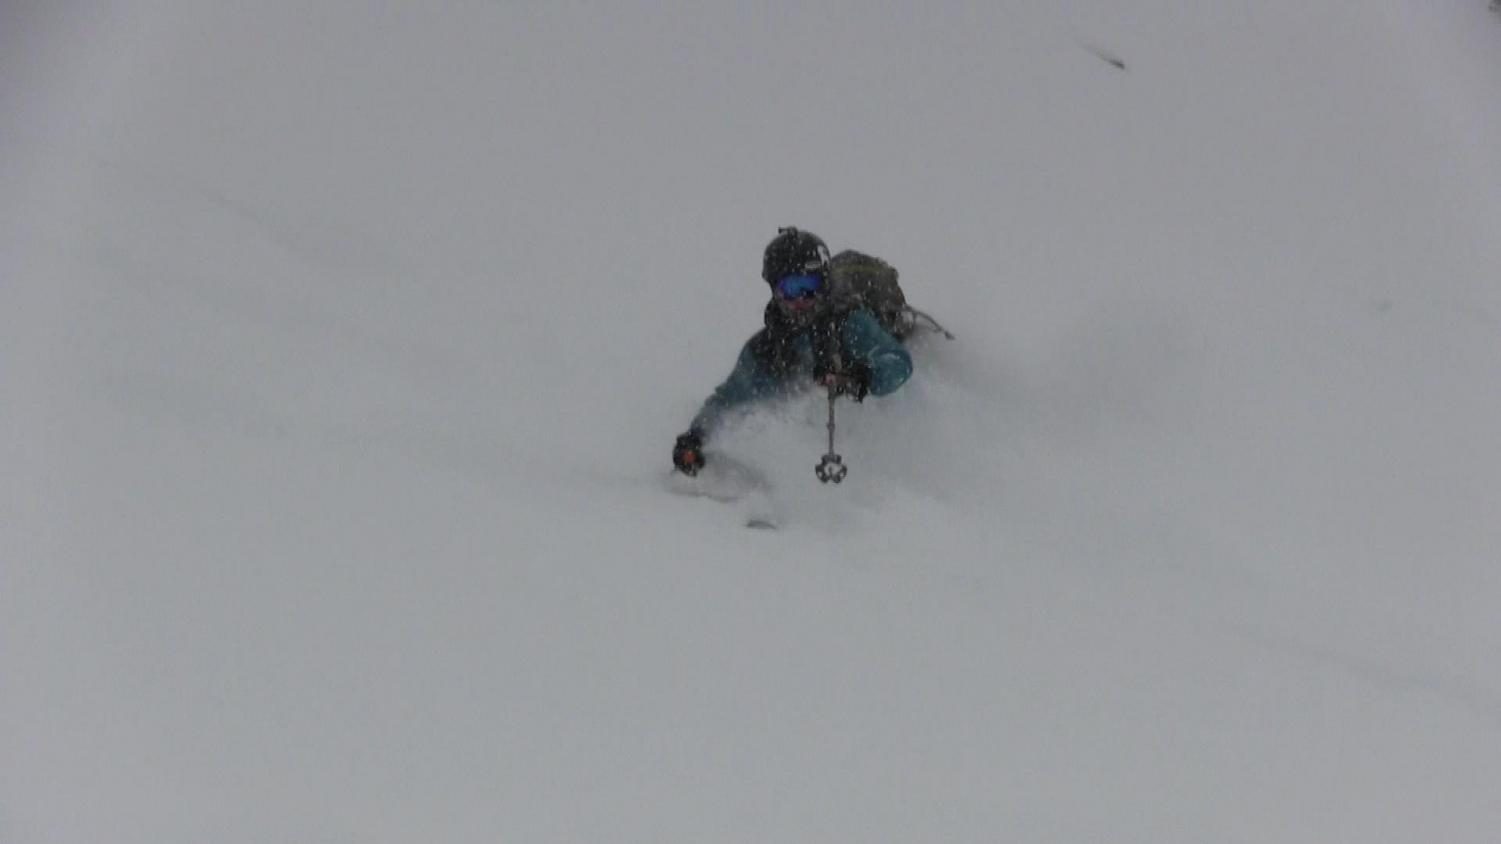 Alex Ropka during one of his first runs of the season.